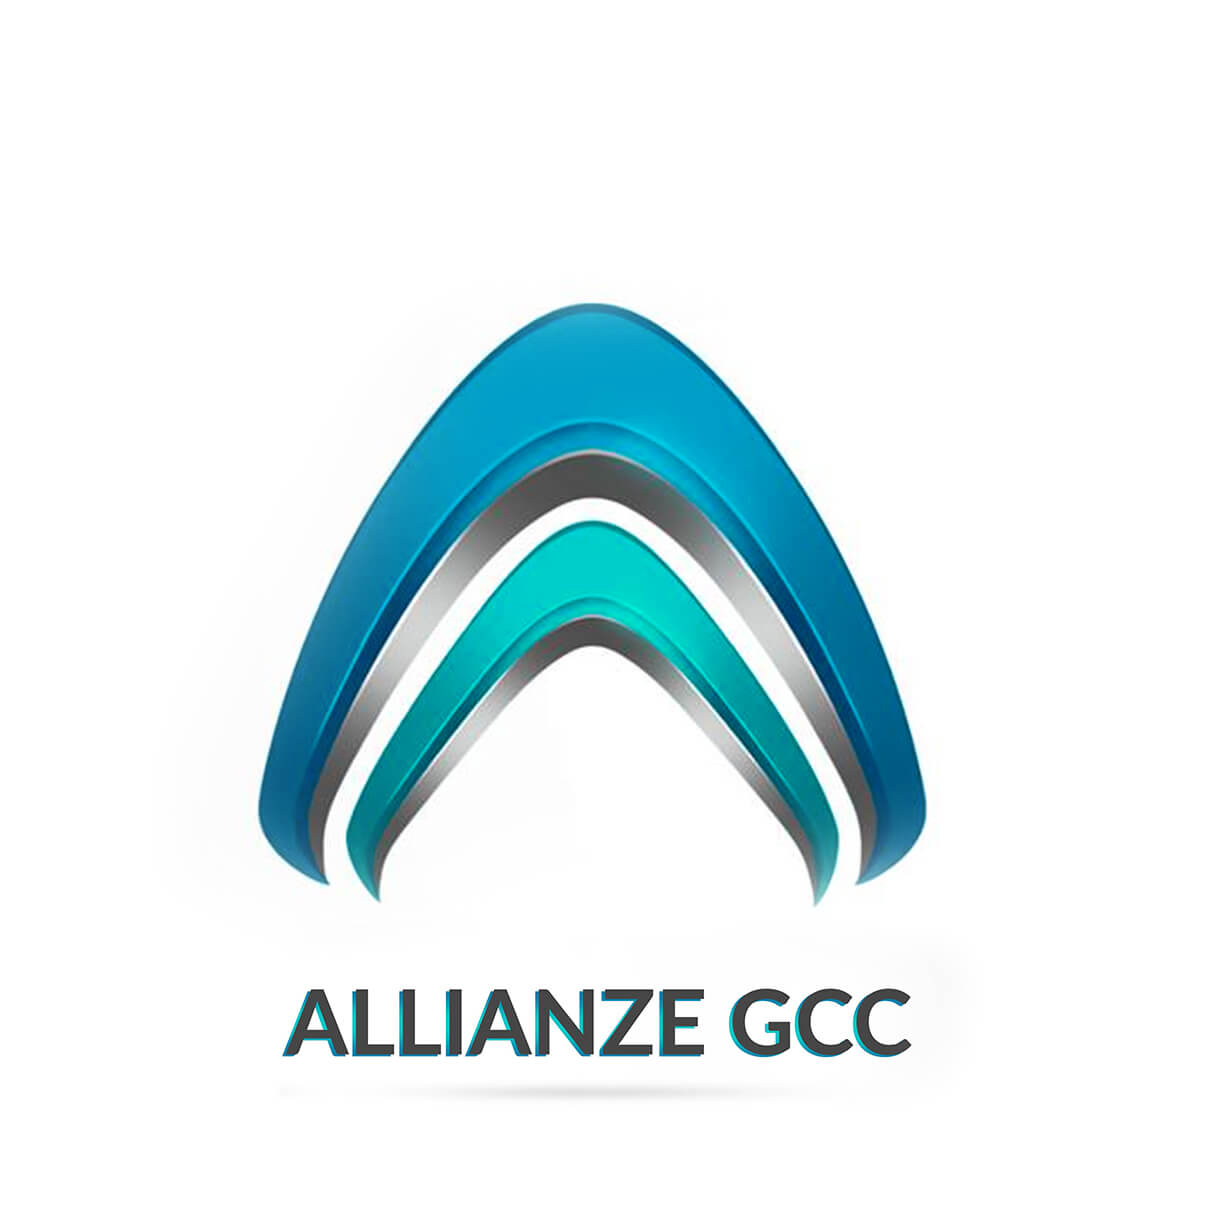 Allianze GCC